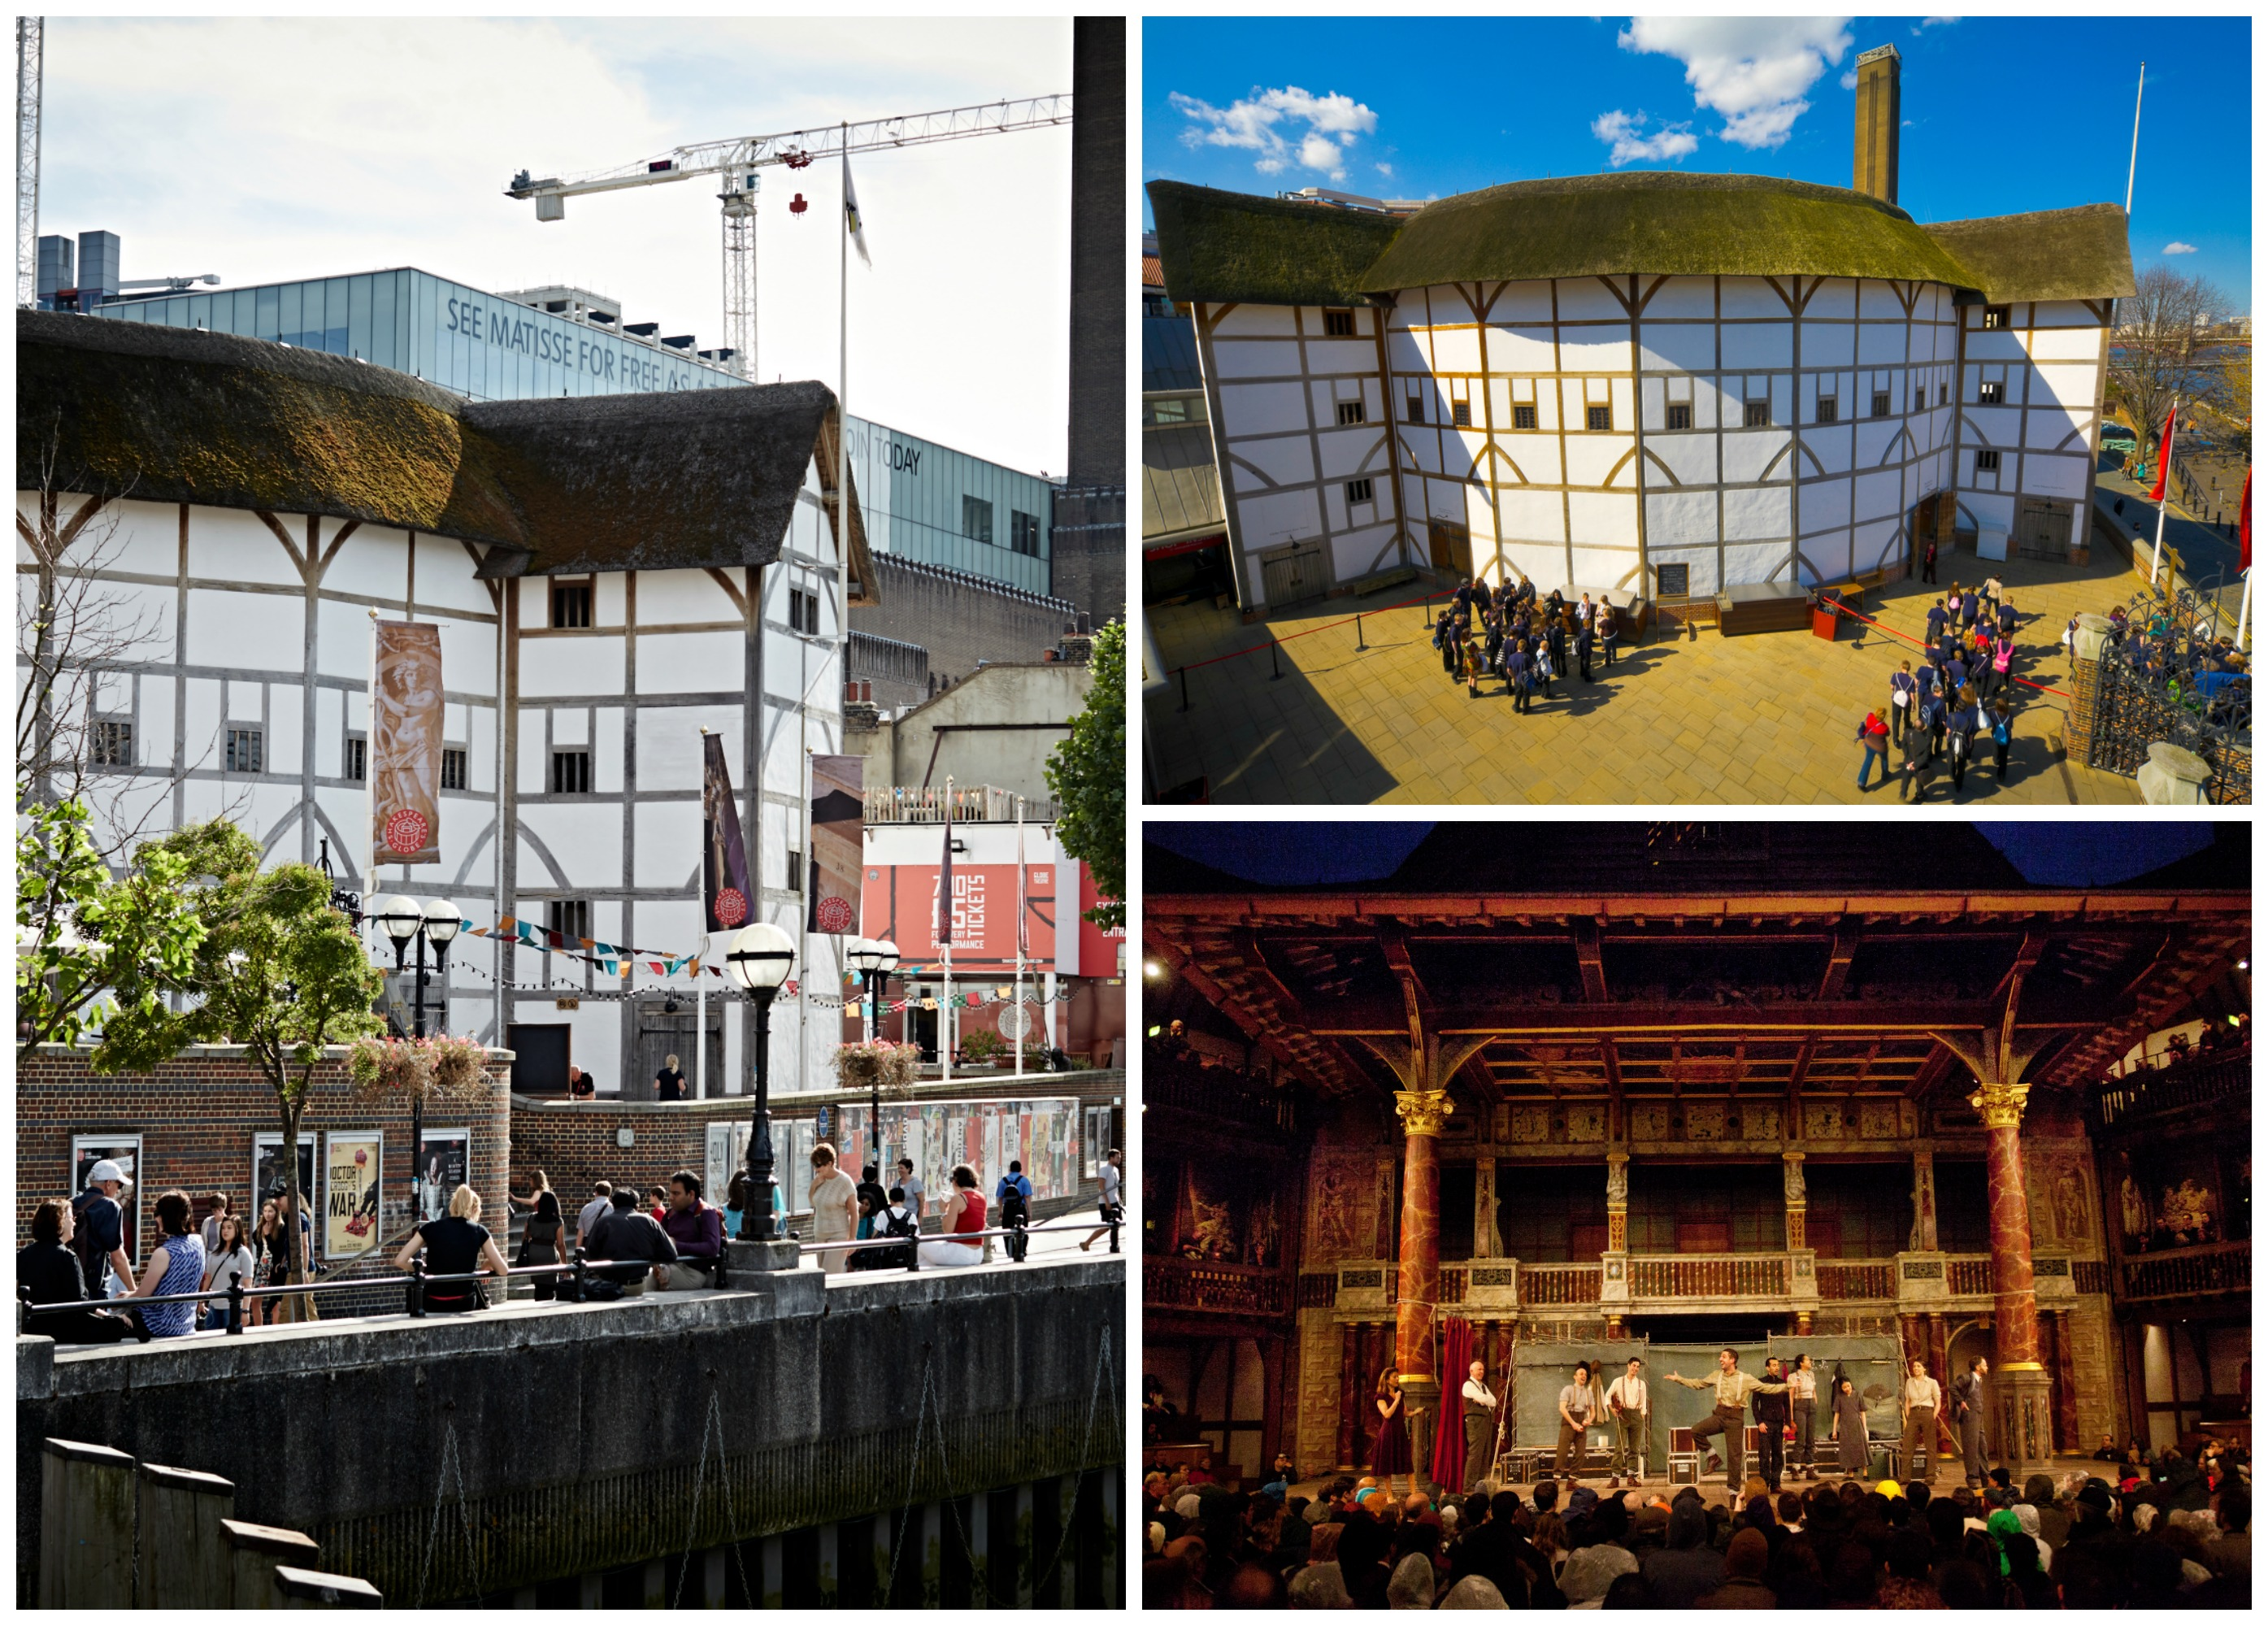 an analysis of the globe theatre in shakespeares greatest play To honour the 400th anniversary of the bard's death, we asked you to rank all of his plays in order of greatness here's how the top ten turned out in the ultimate shakespeare play-off.